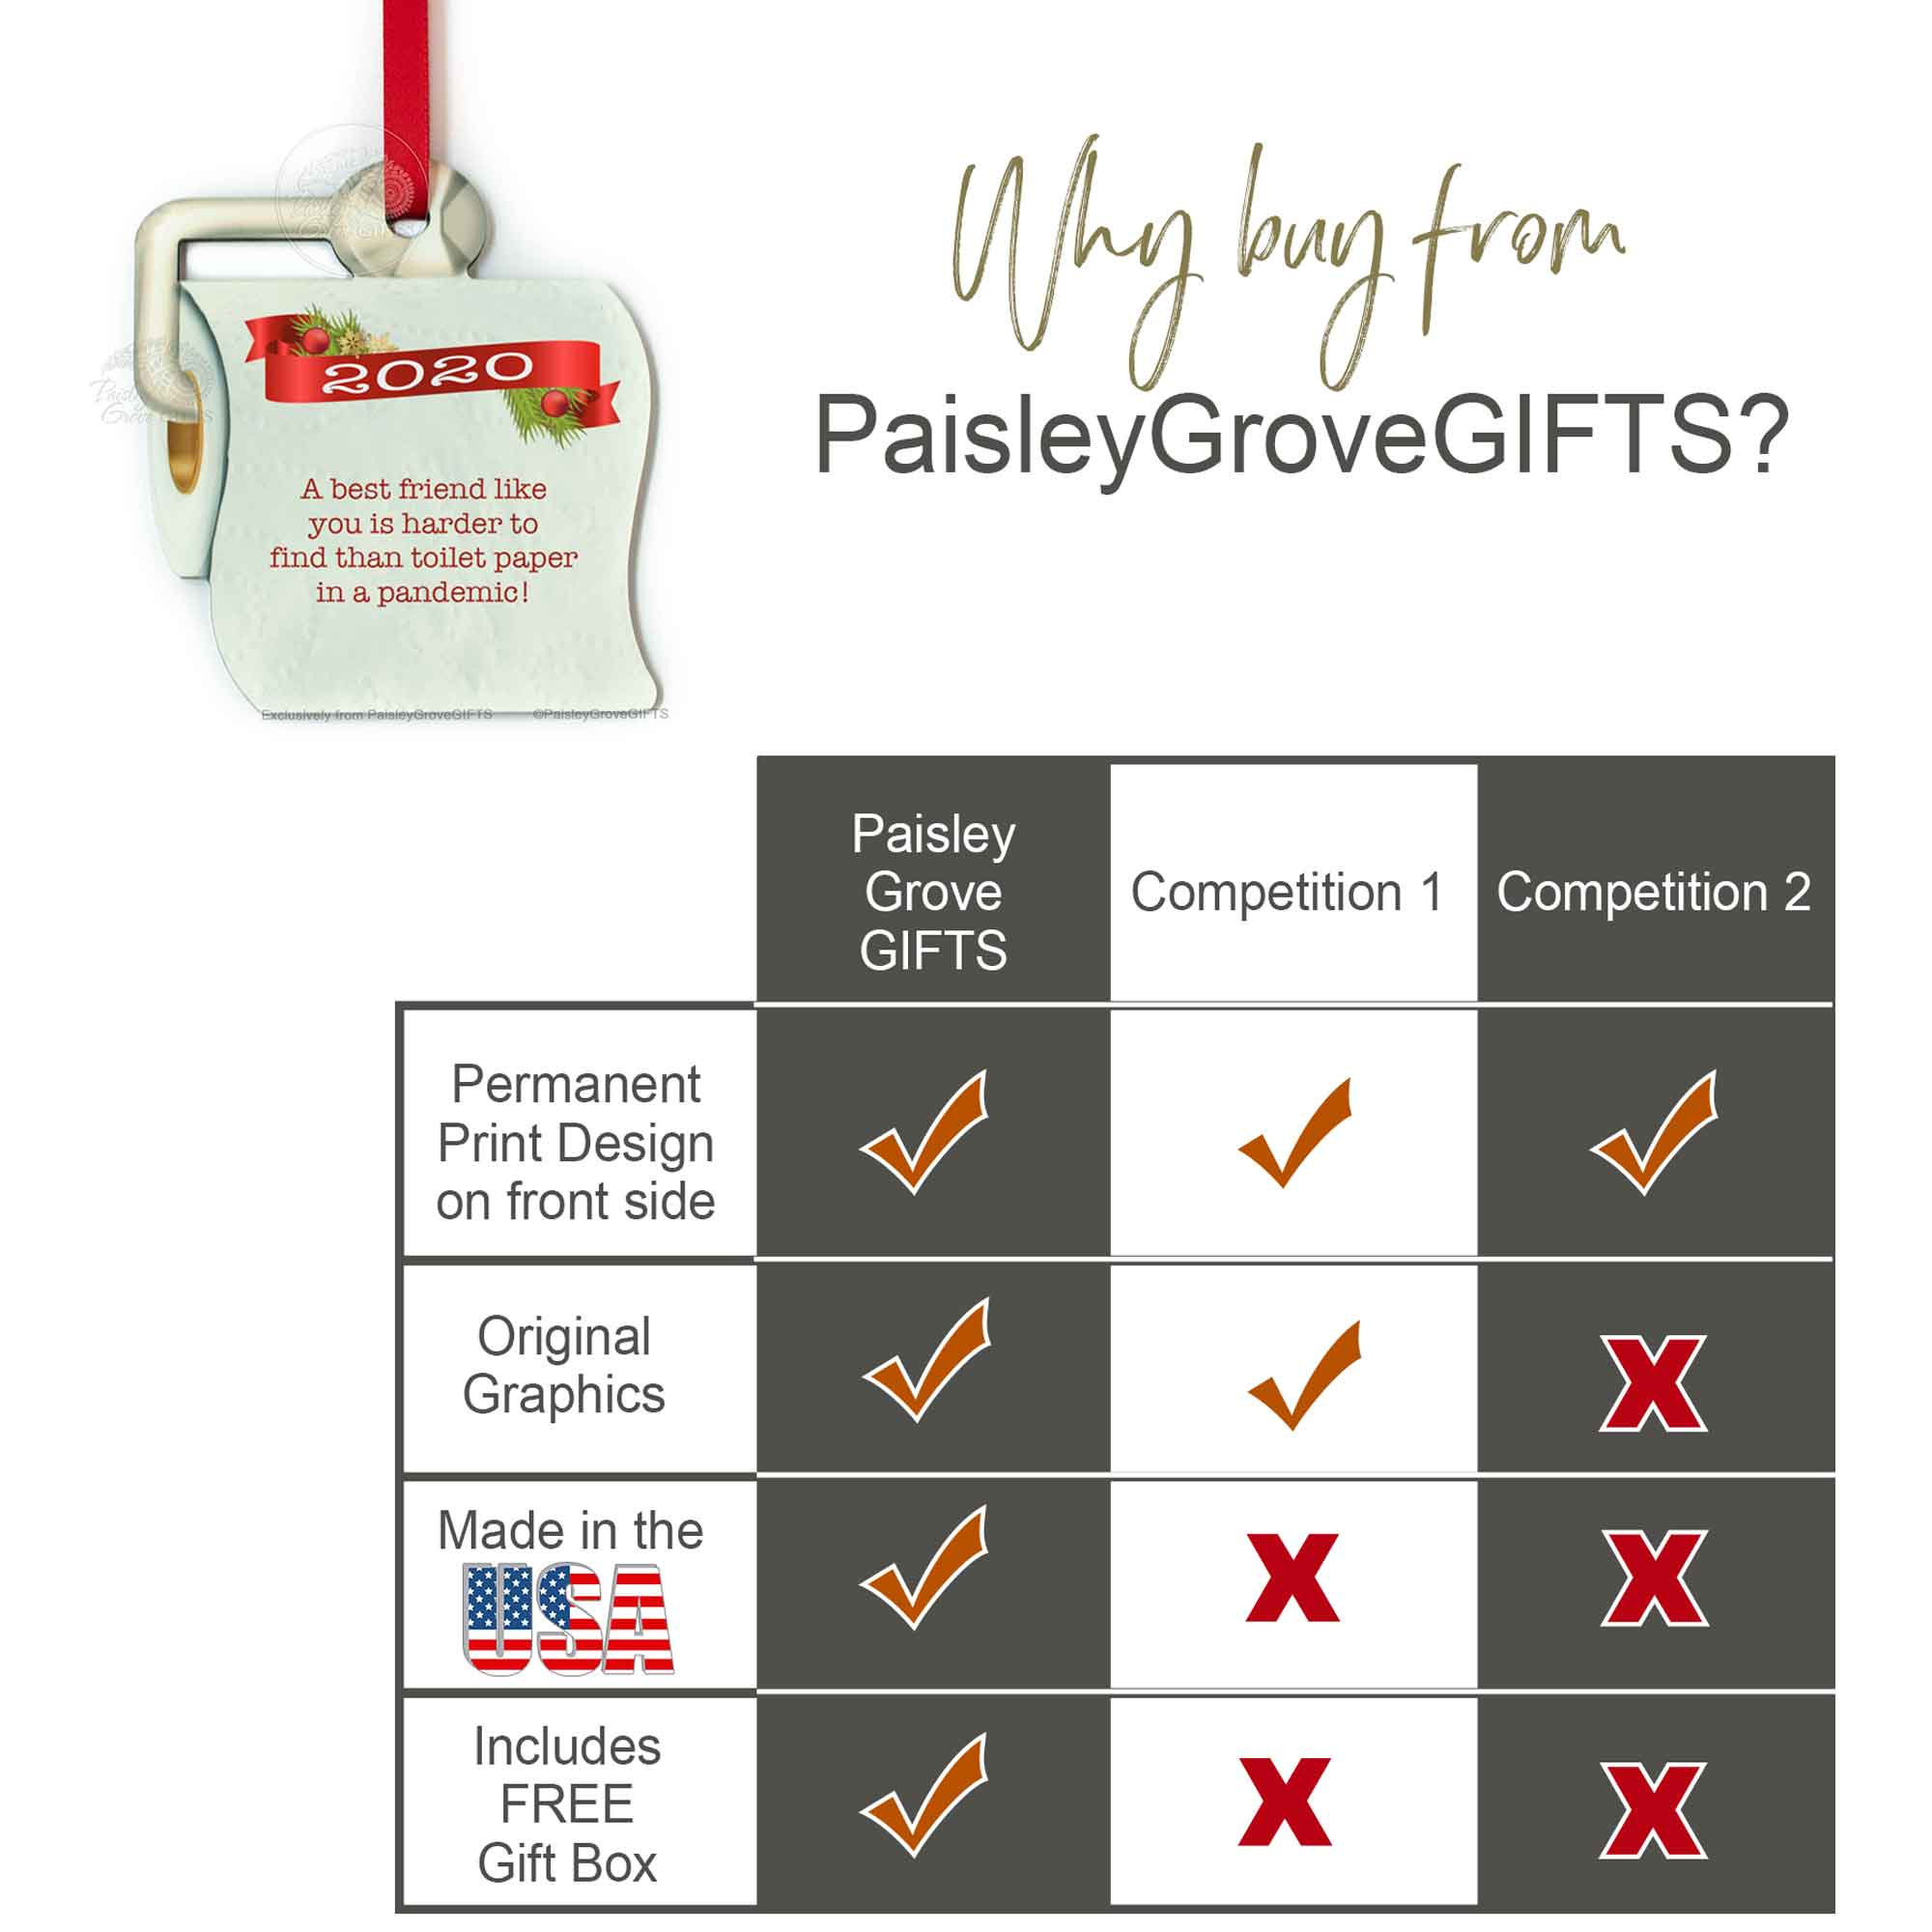 CopyrightPaisleyGroveGIFTS S525k Quality Ornament Superior to Others, Comparison Chart for Toilet Paper Ornament